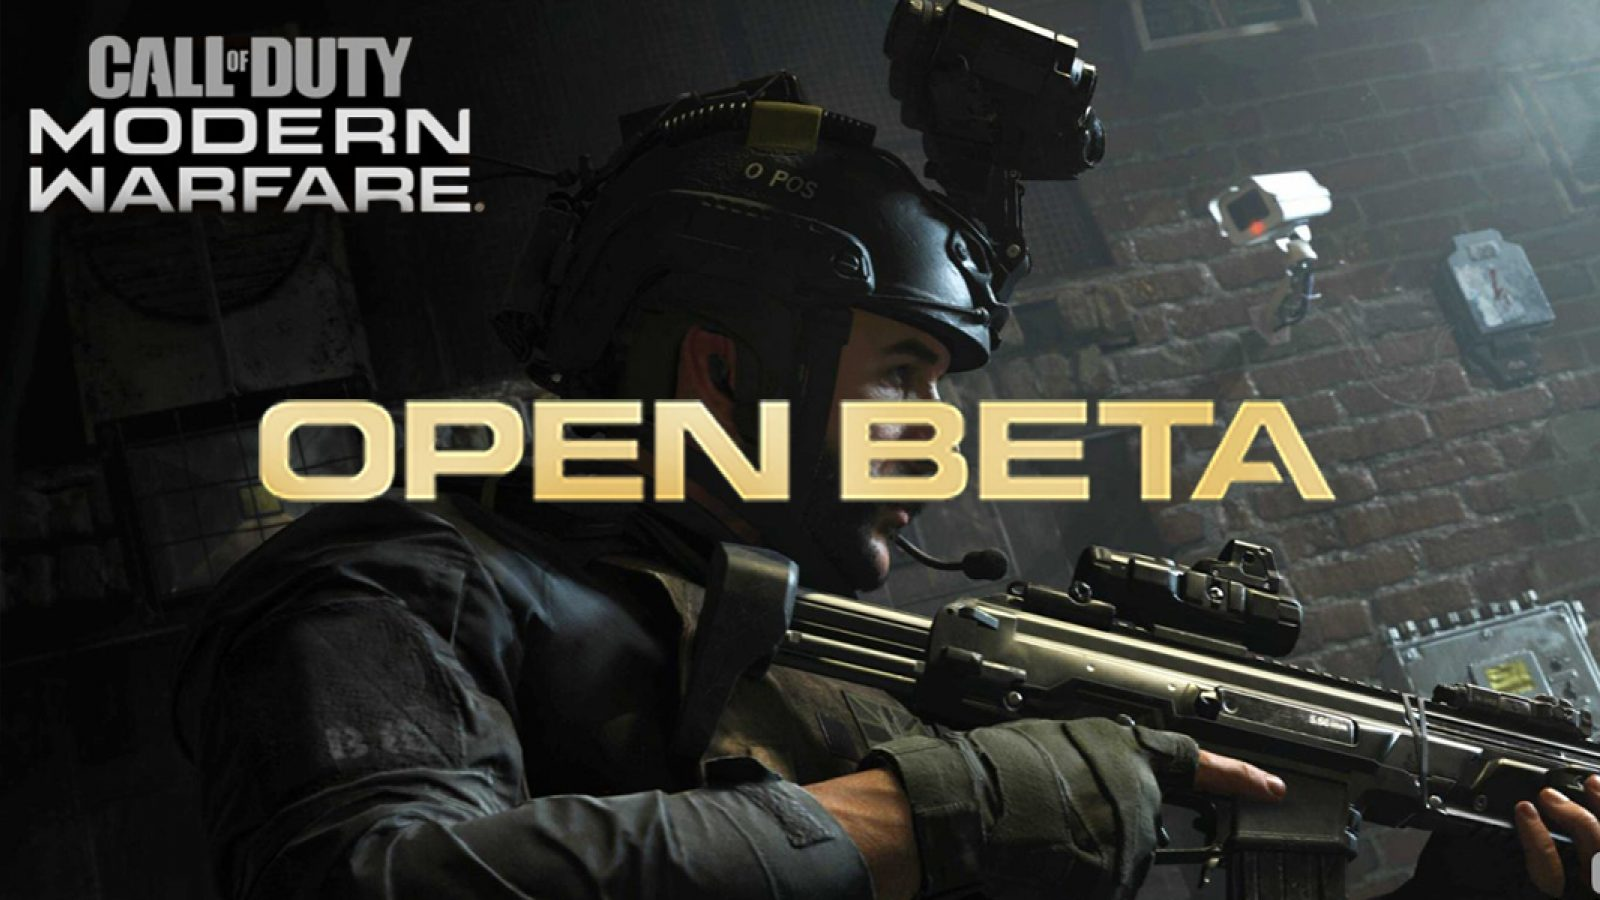 Call of Duty: Modern Warfare gets an official multiplayer beta trailer